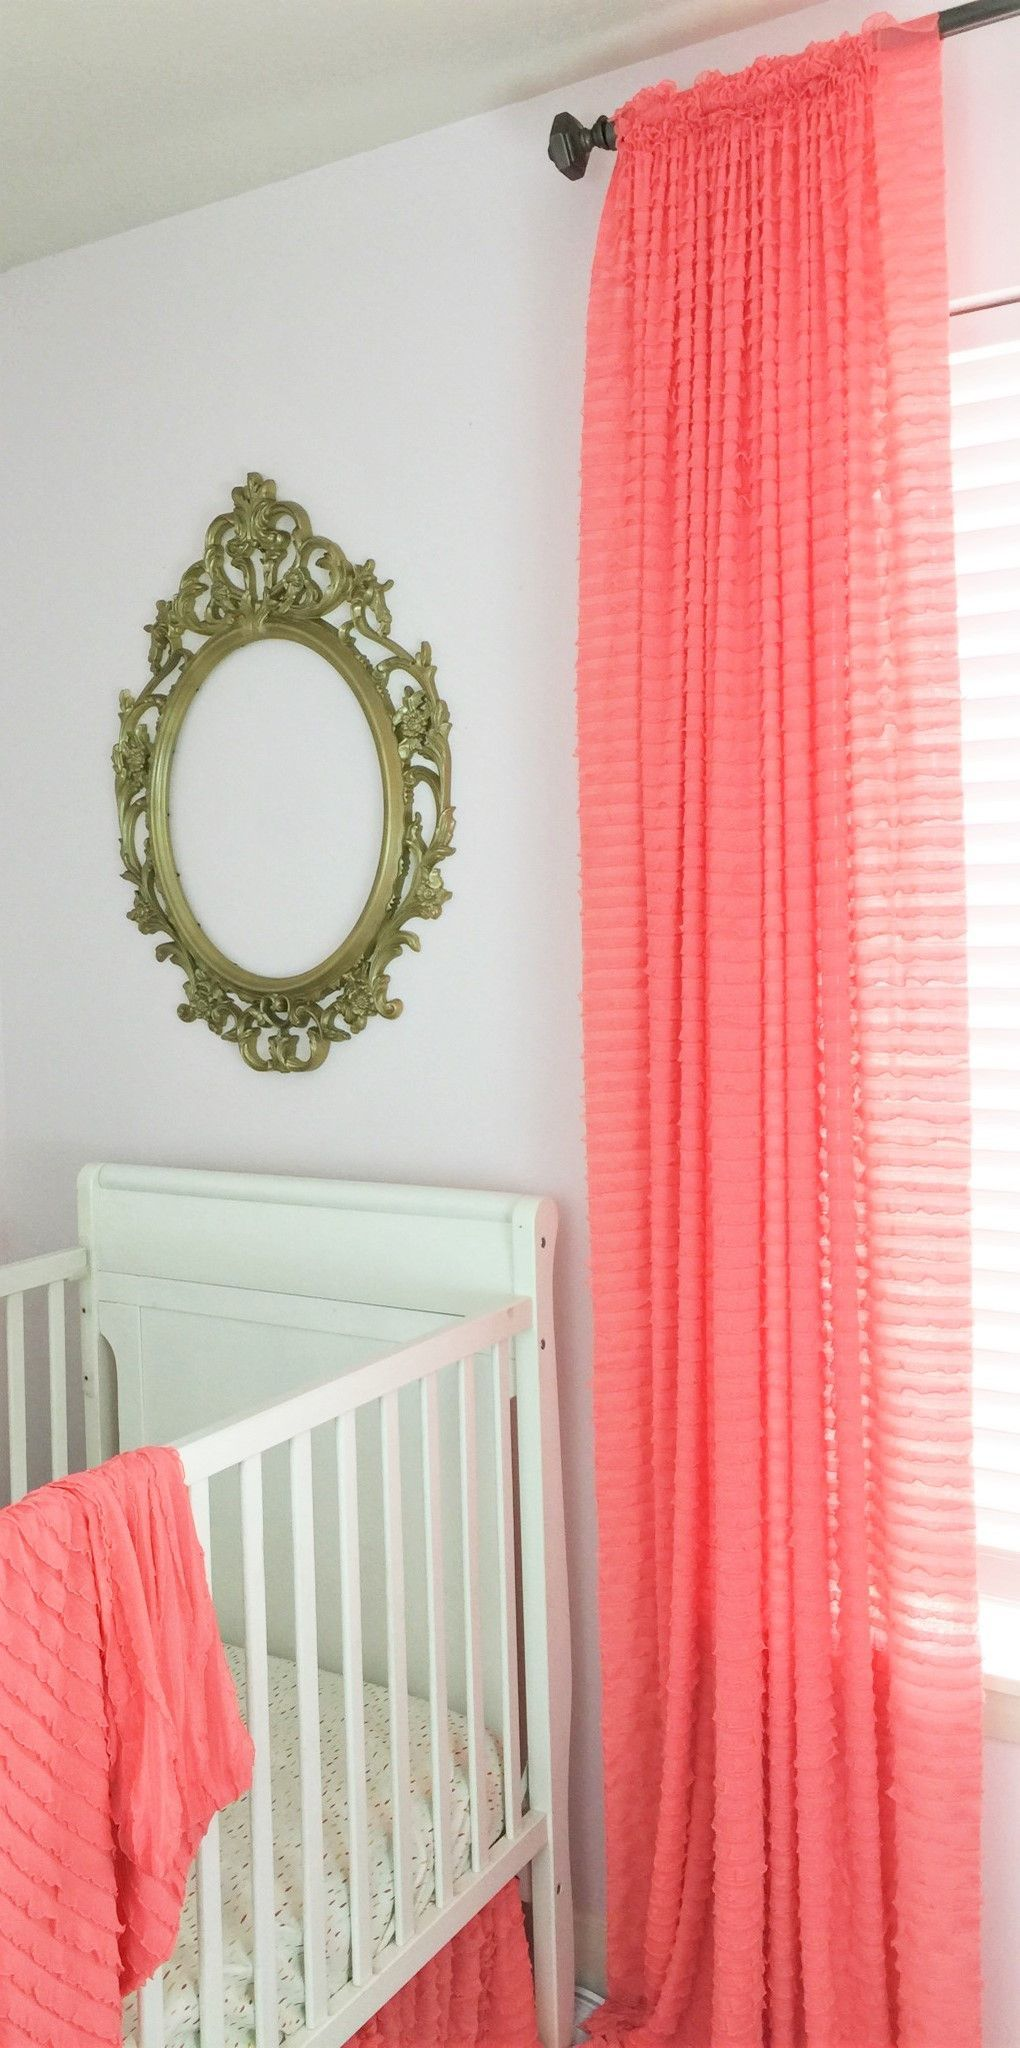 full size best girl ideas blackout boys drapes nurserycurtains nursery inspirations curtain amazing pretty for on baby images curtains nurseryrtains of